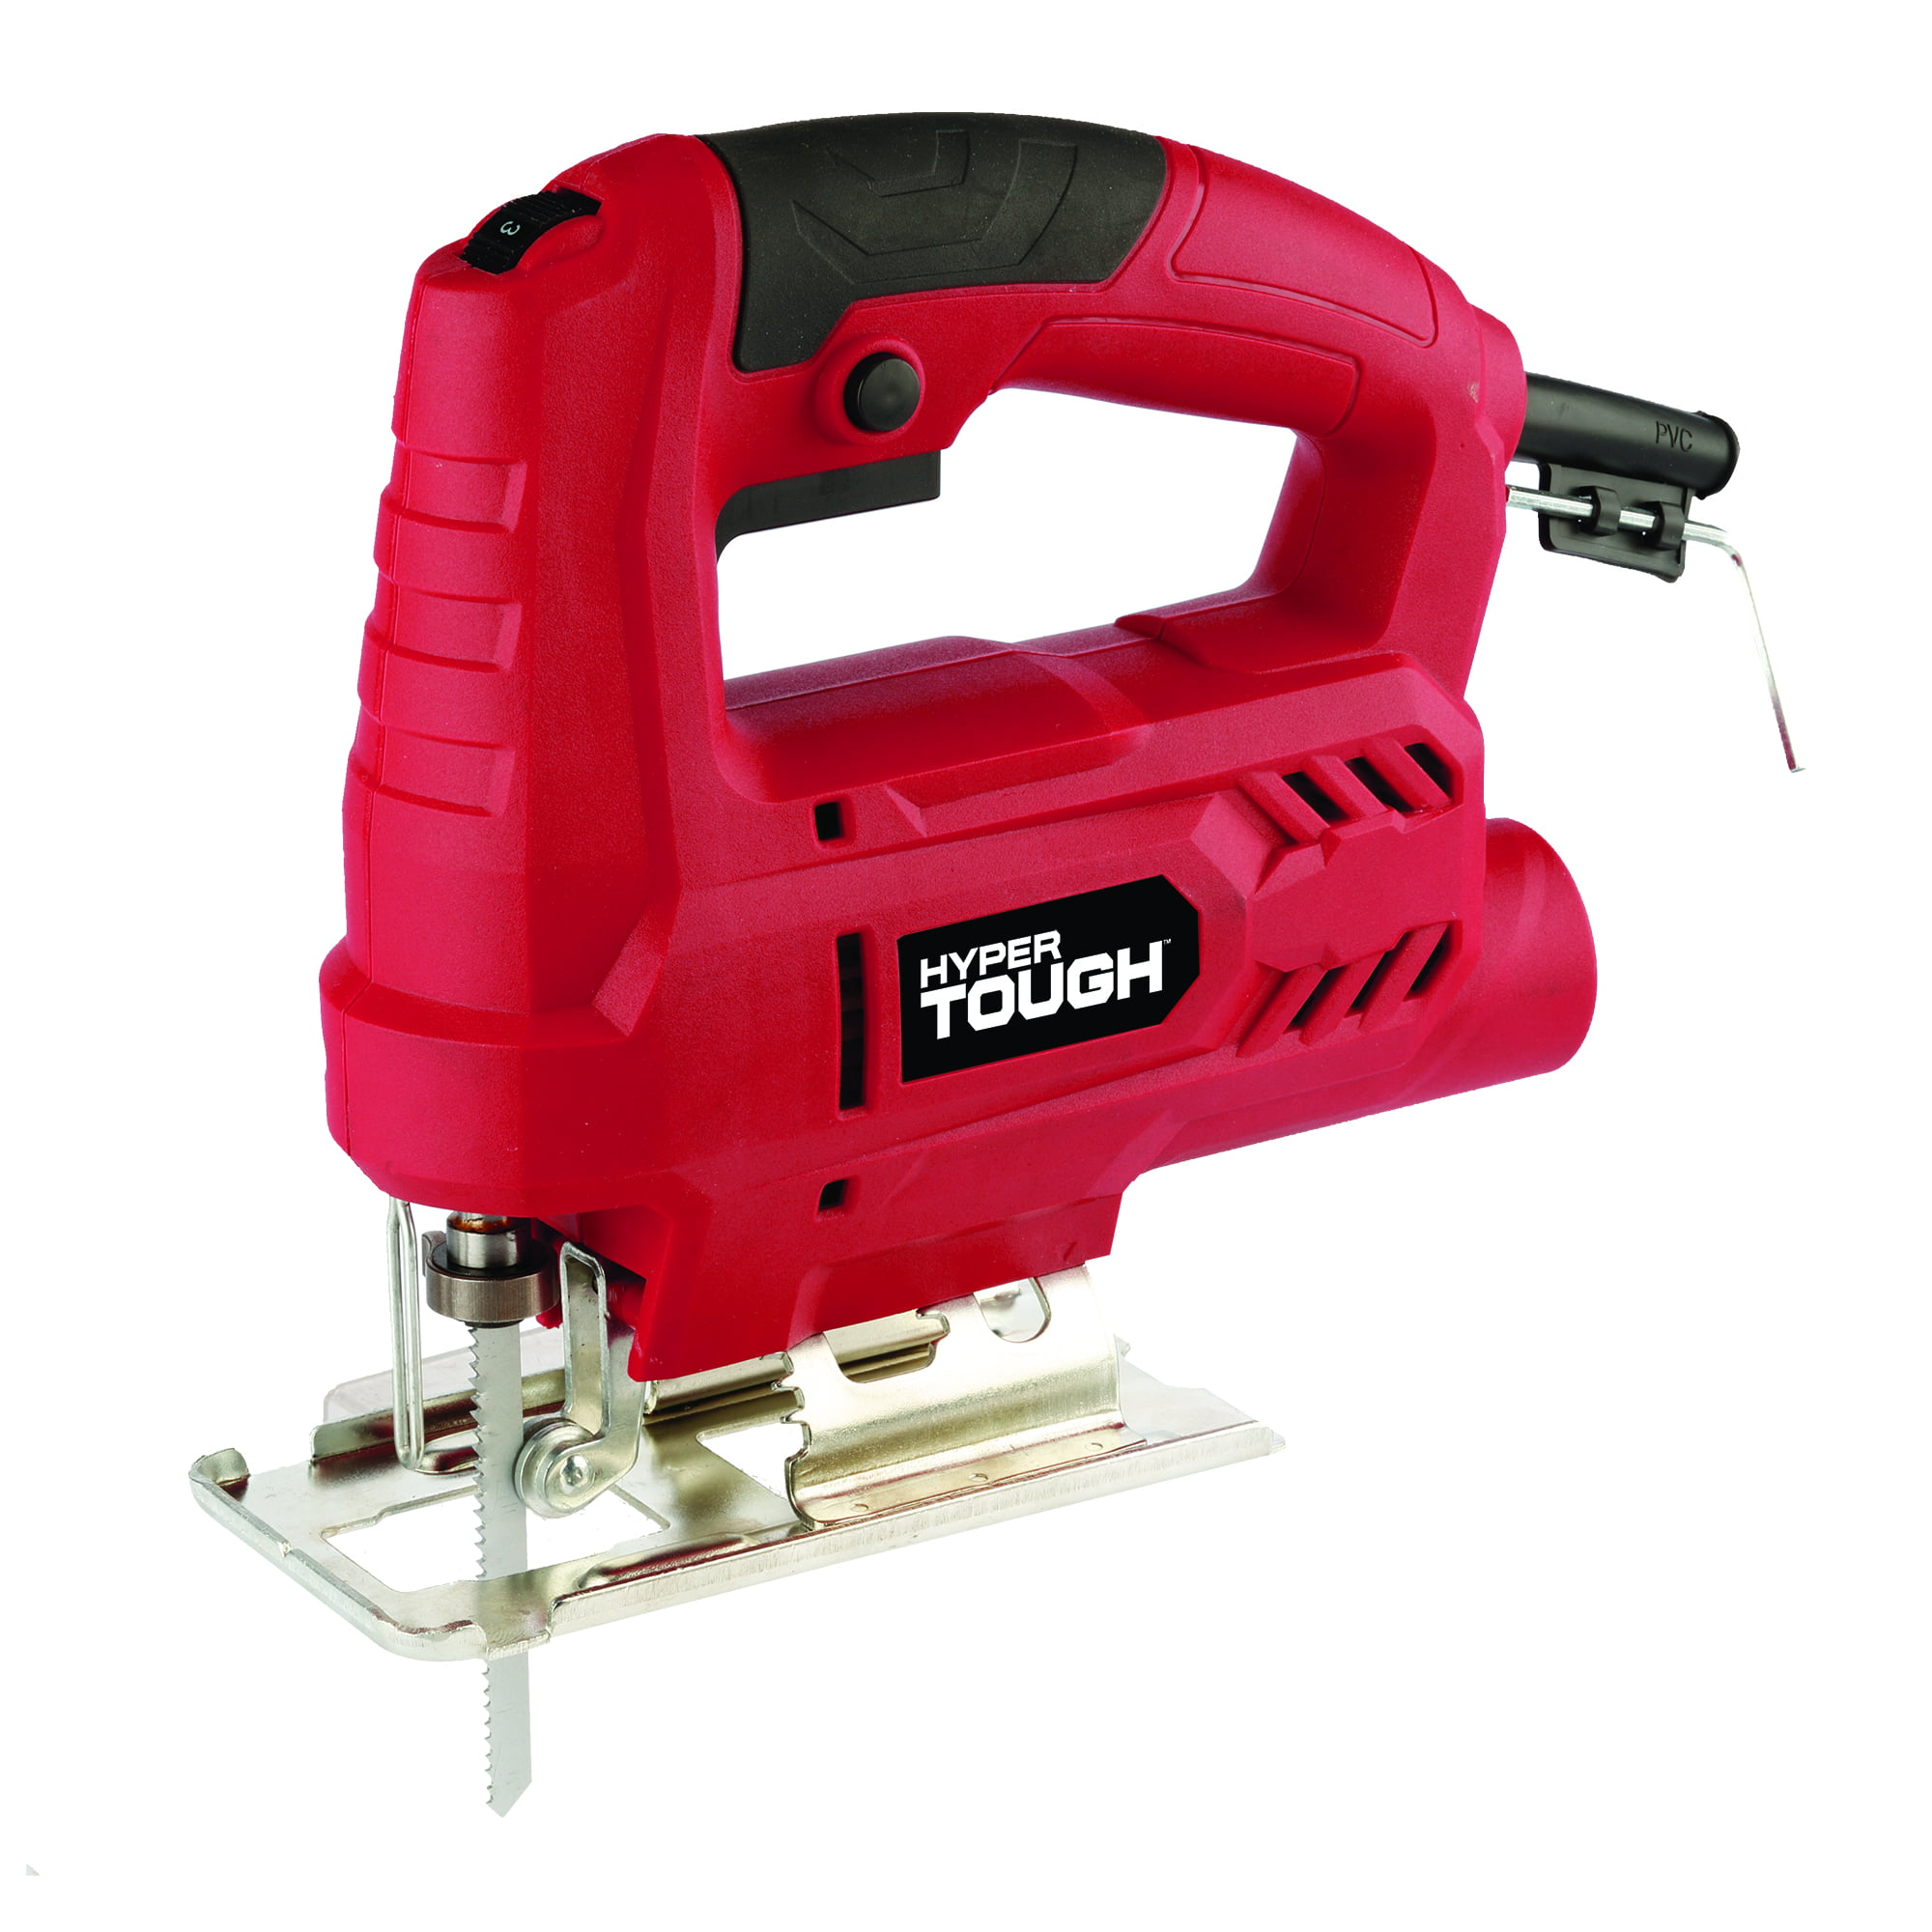 Hyper tough 35amp jig saw walmart keyboard keysfo